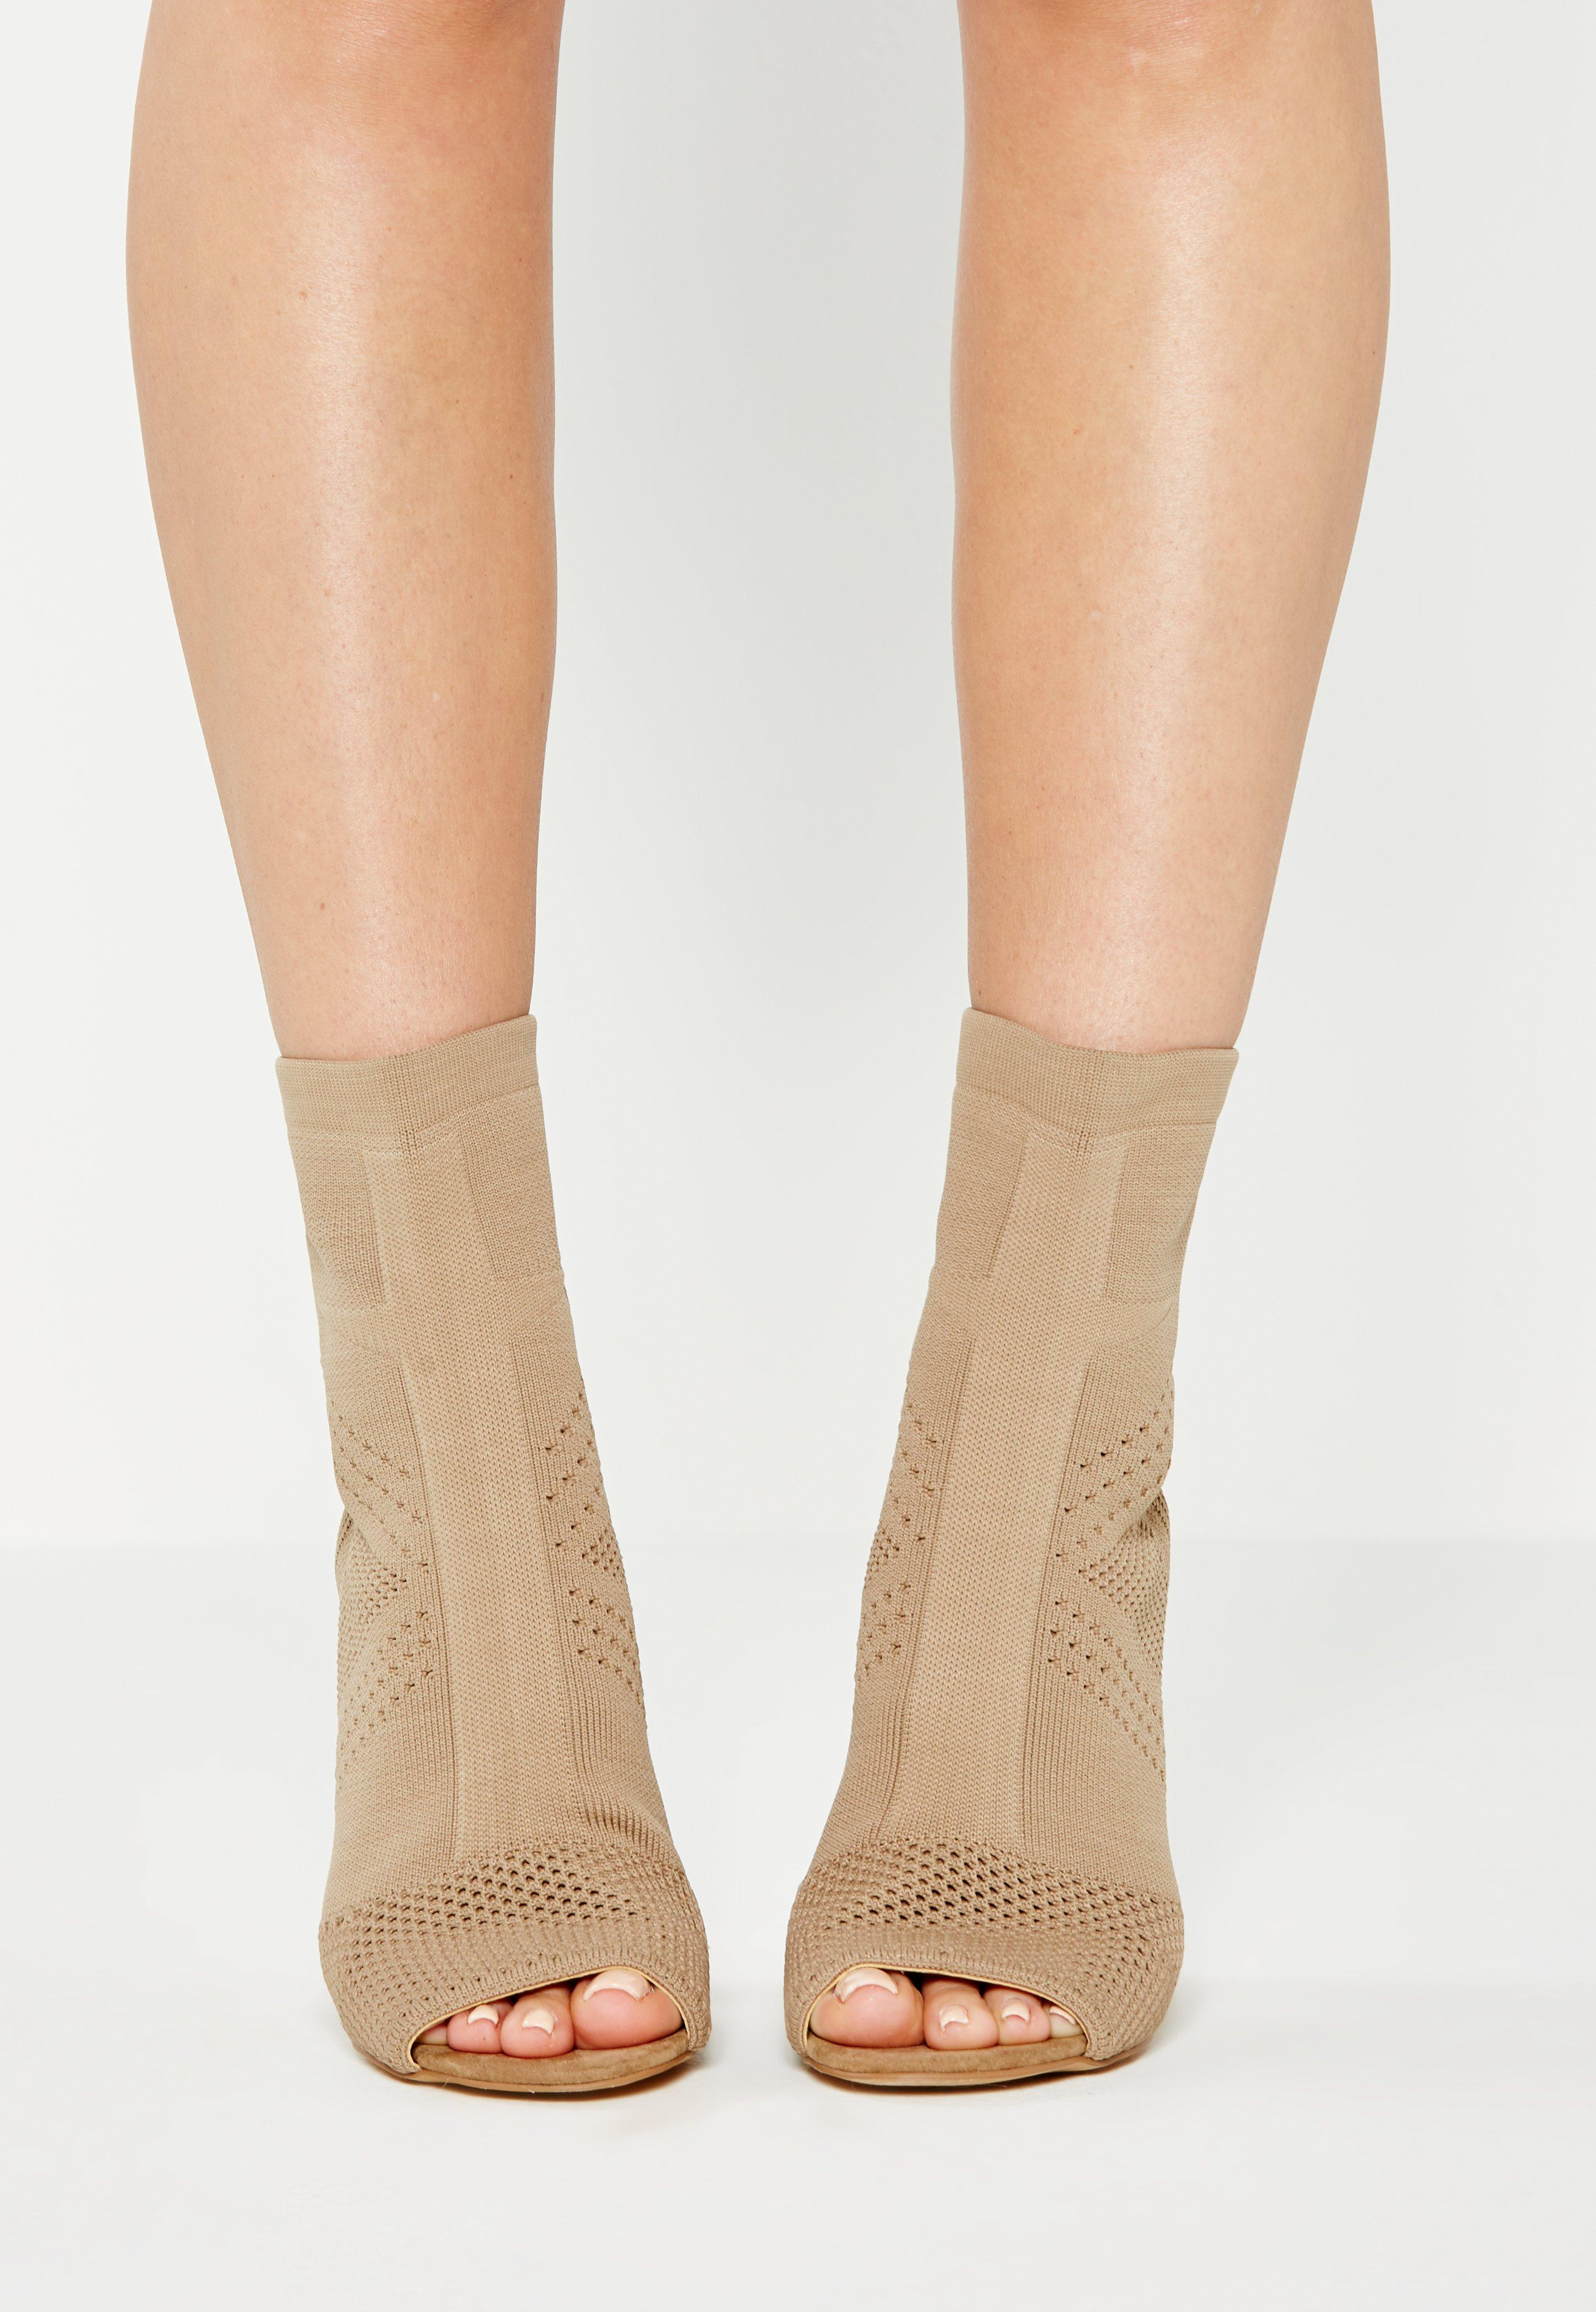 Lyst - Missguided Nude Knitted Peep Toe Ankle Boots in Natural b857bd074204